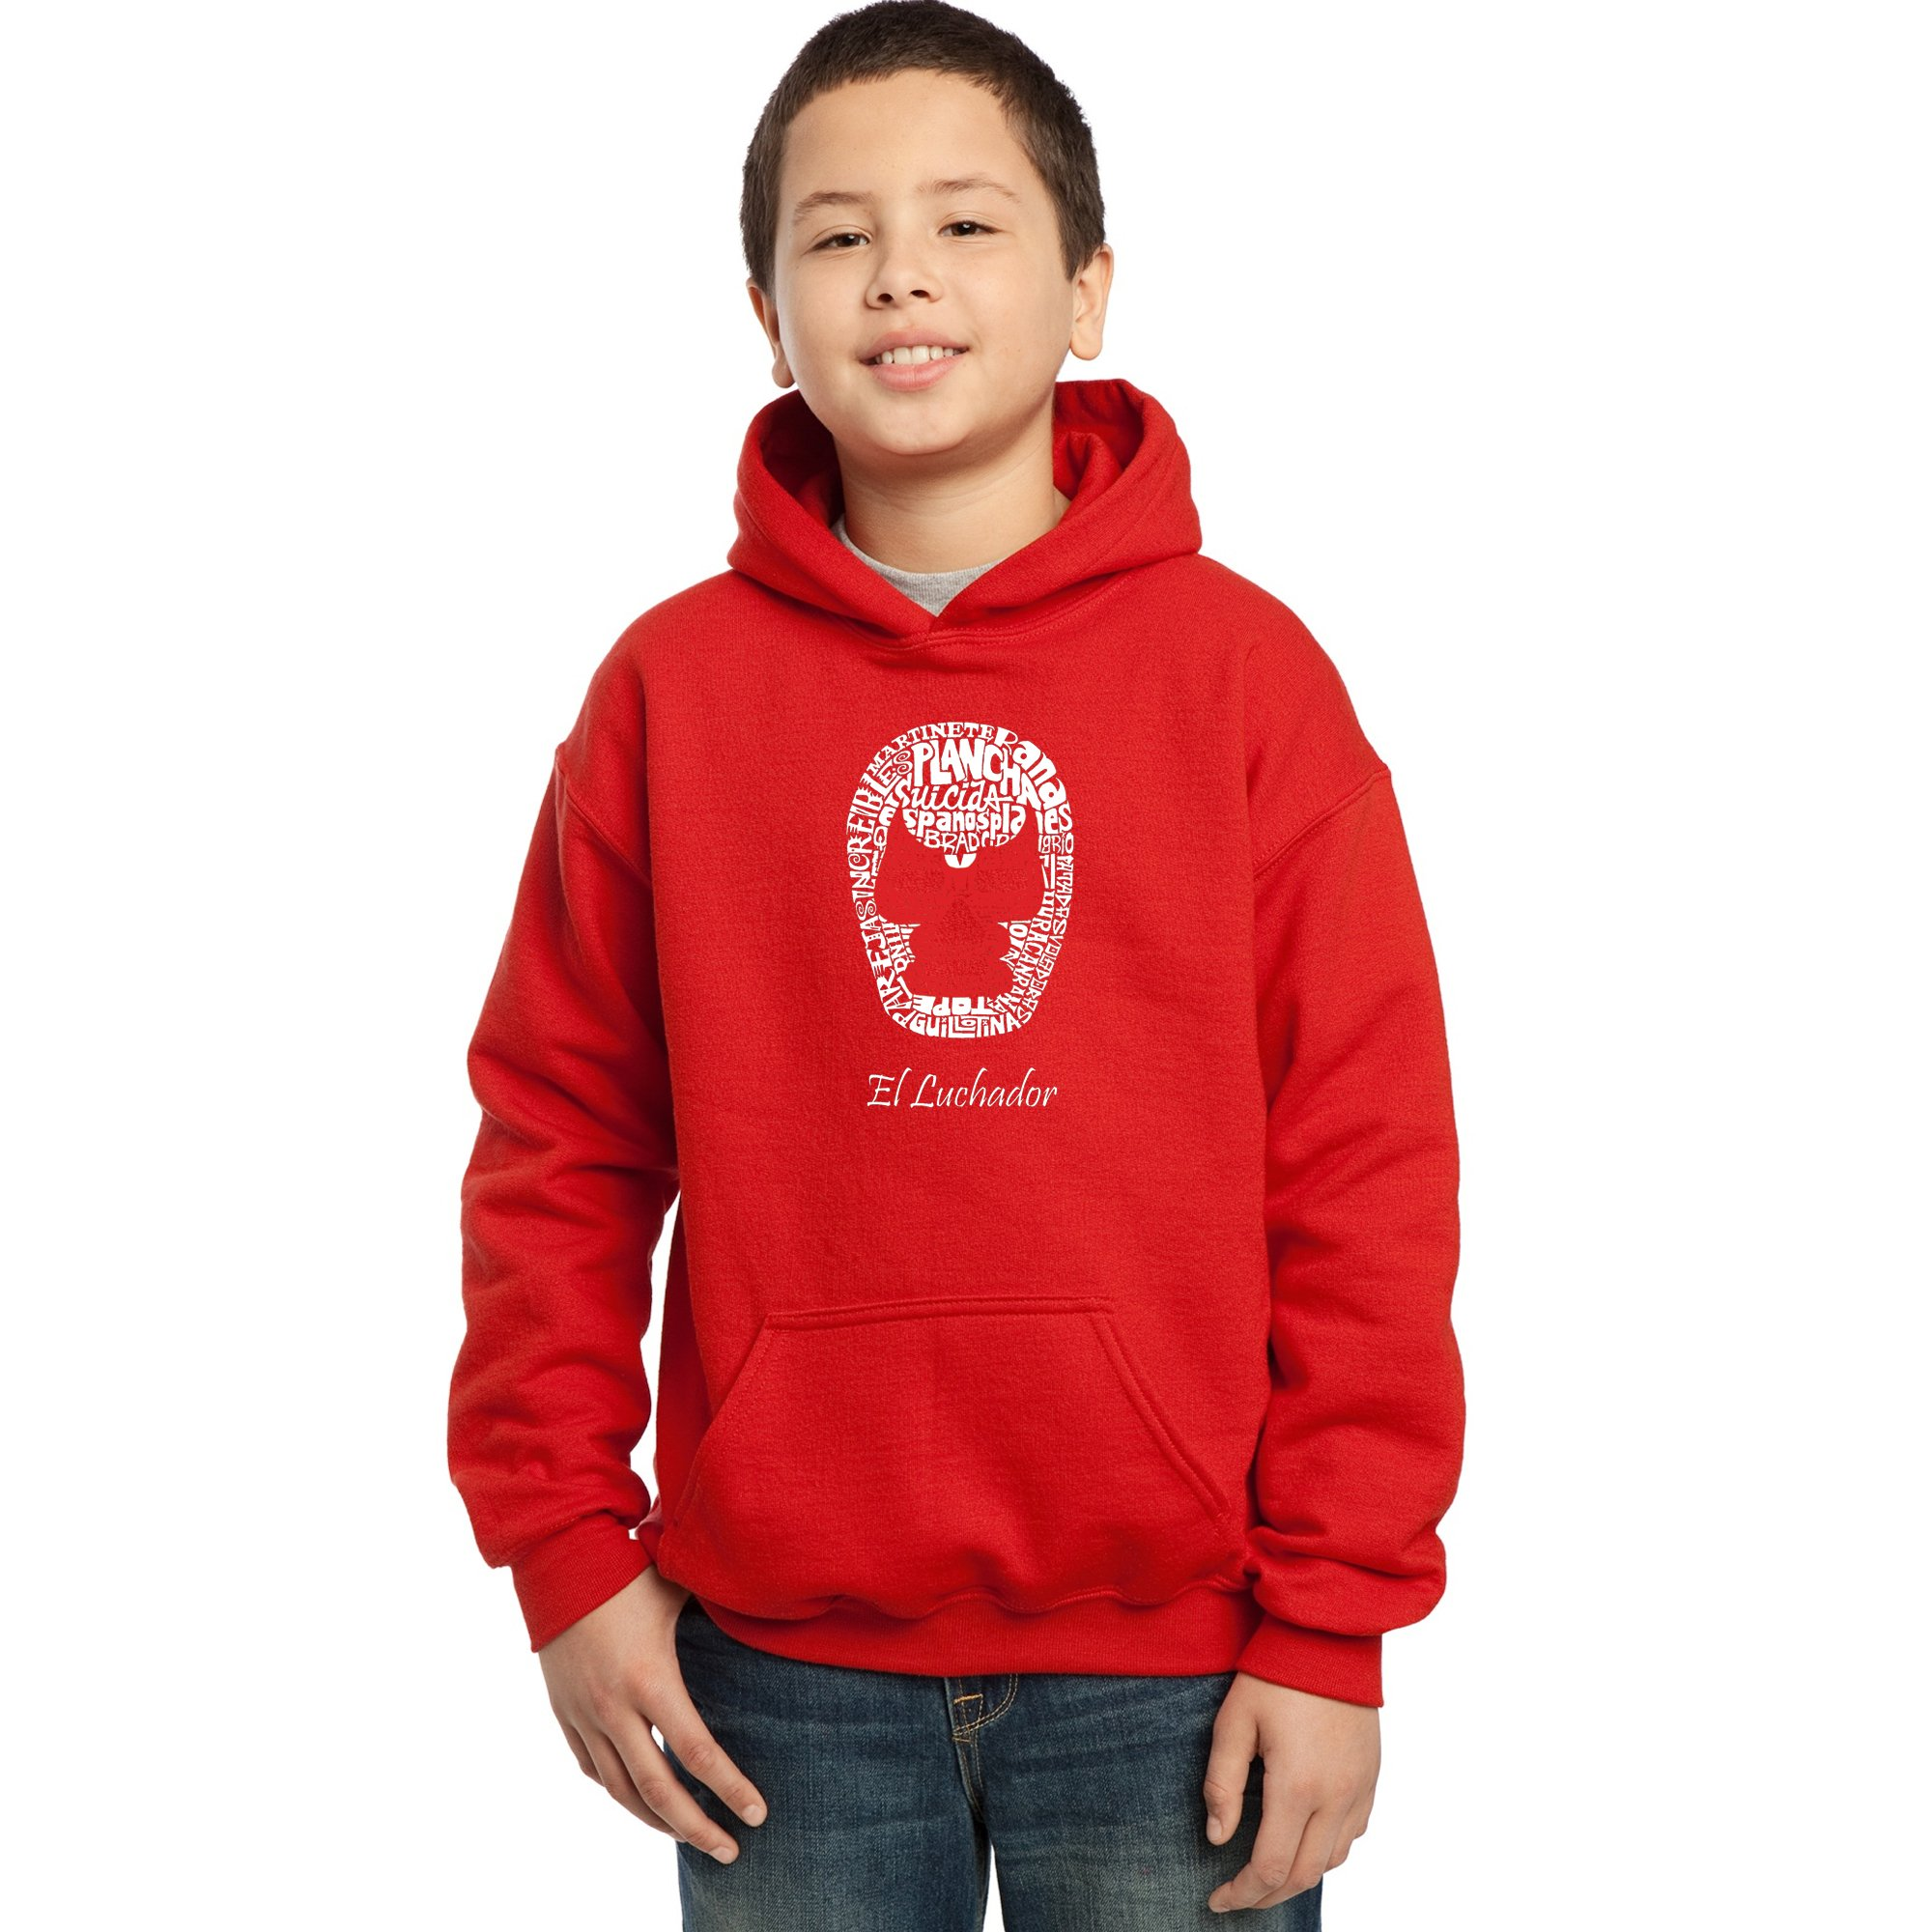 LA Pop Art Boy's Word Art Hooded Sweatshirt - Mexican Wrestling Mask by LA Pop Art